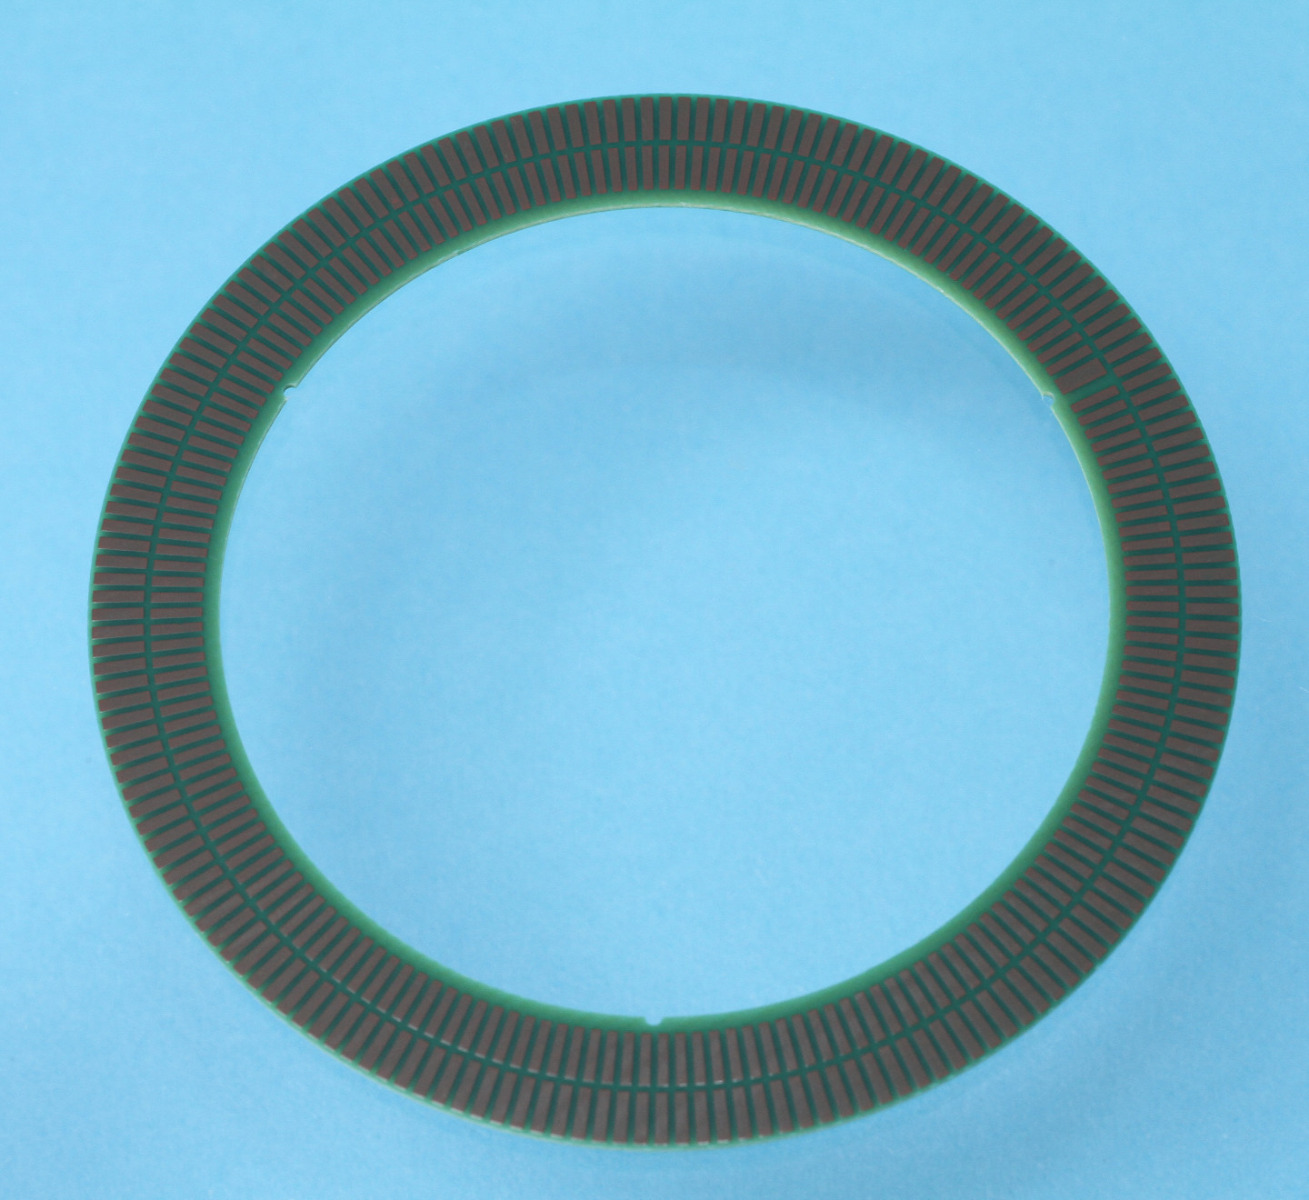 TPCS03 Codewheel with 180 periods, inner diameter 56 mm and outer diameter 72.6 mm for Incremental Encoders ID1102C, ID4501C